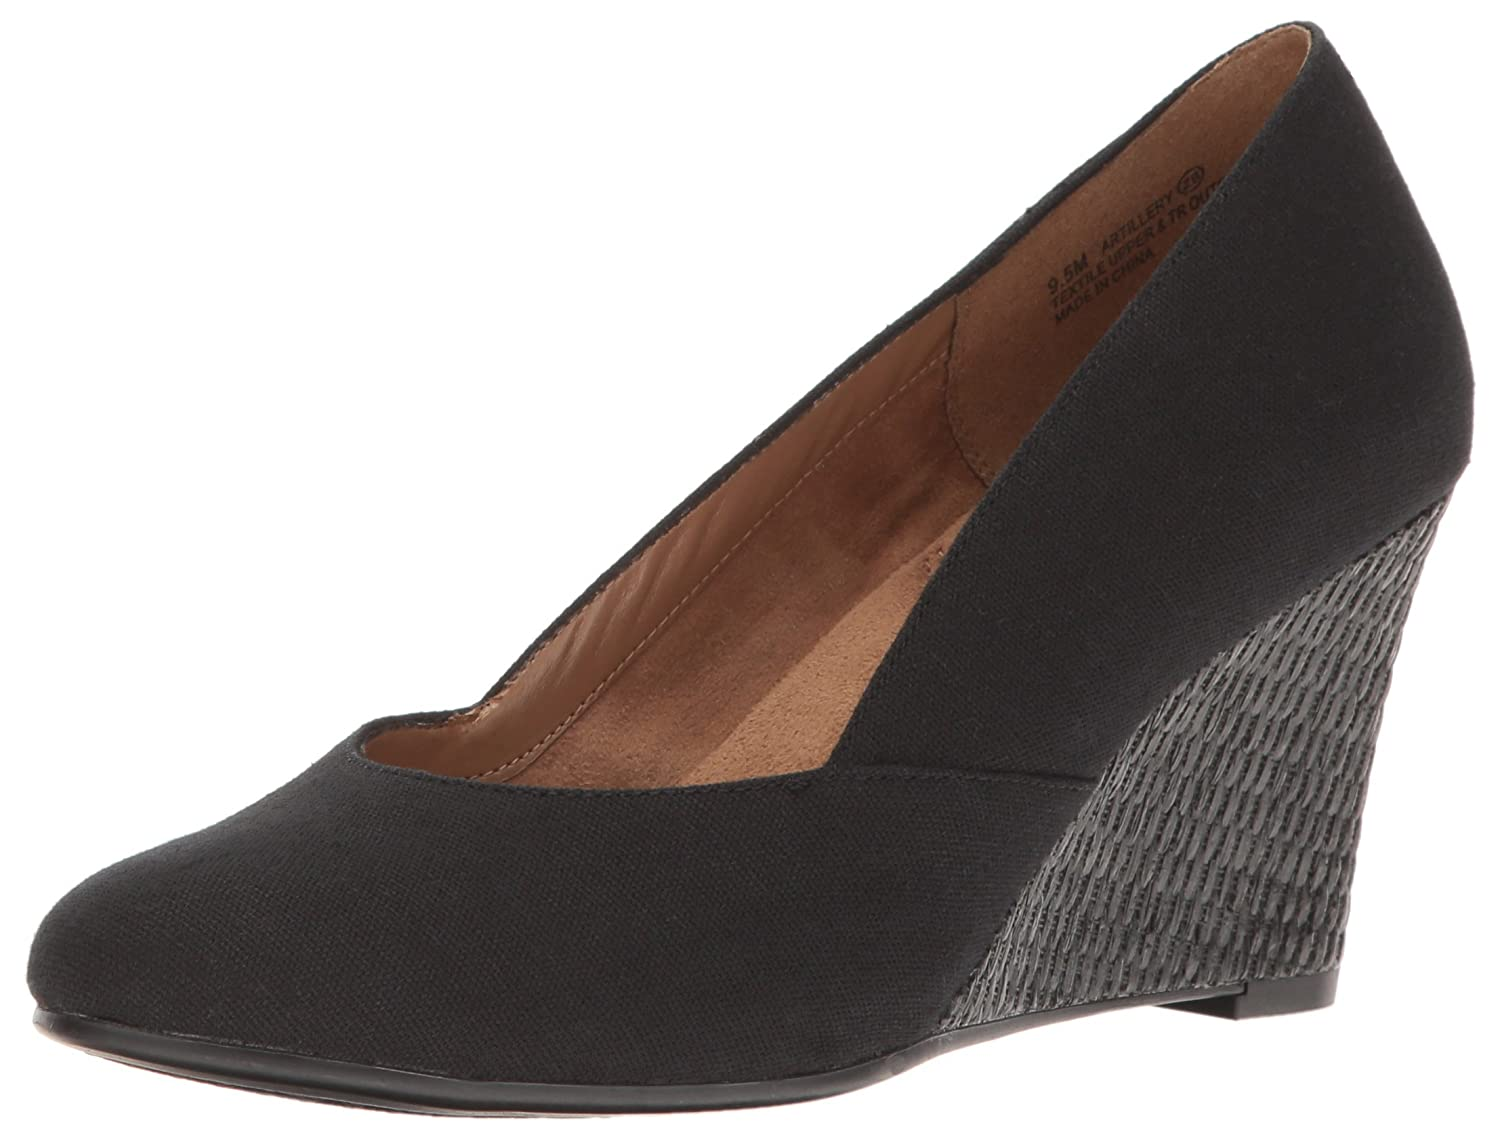 Aerosoles Women's Artillery Wedge Pump